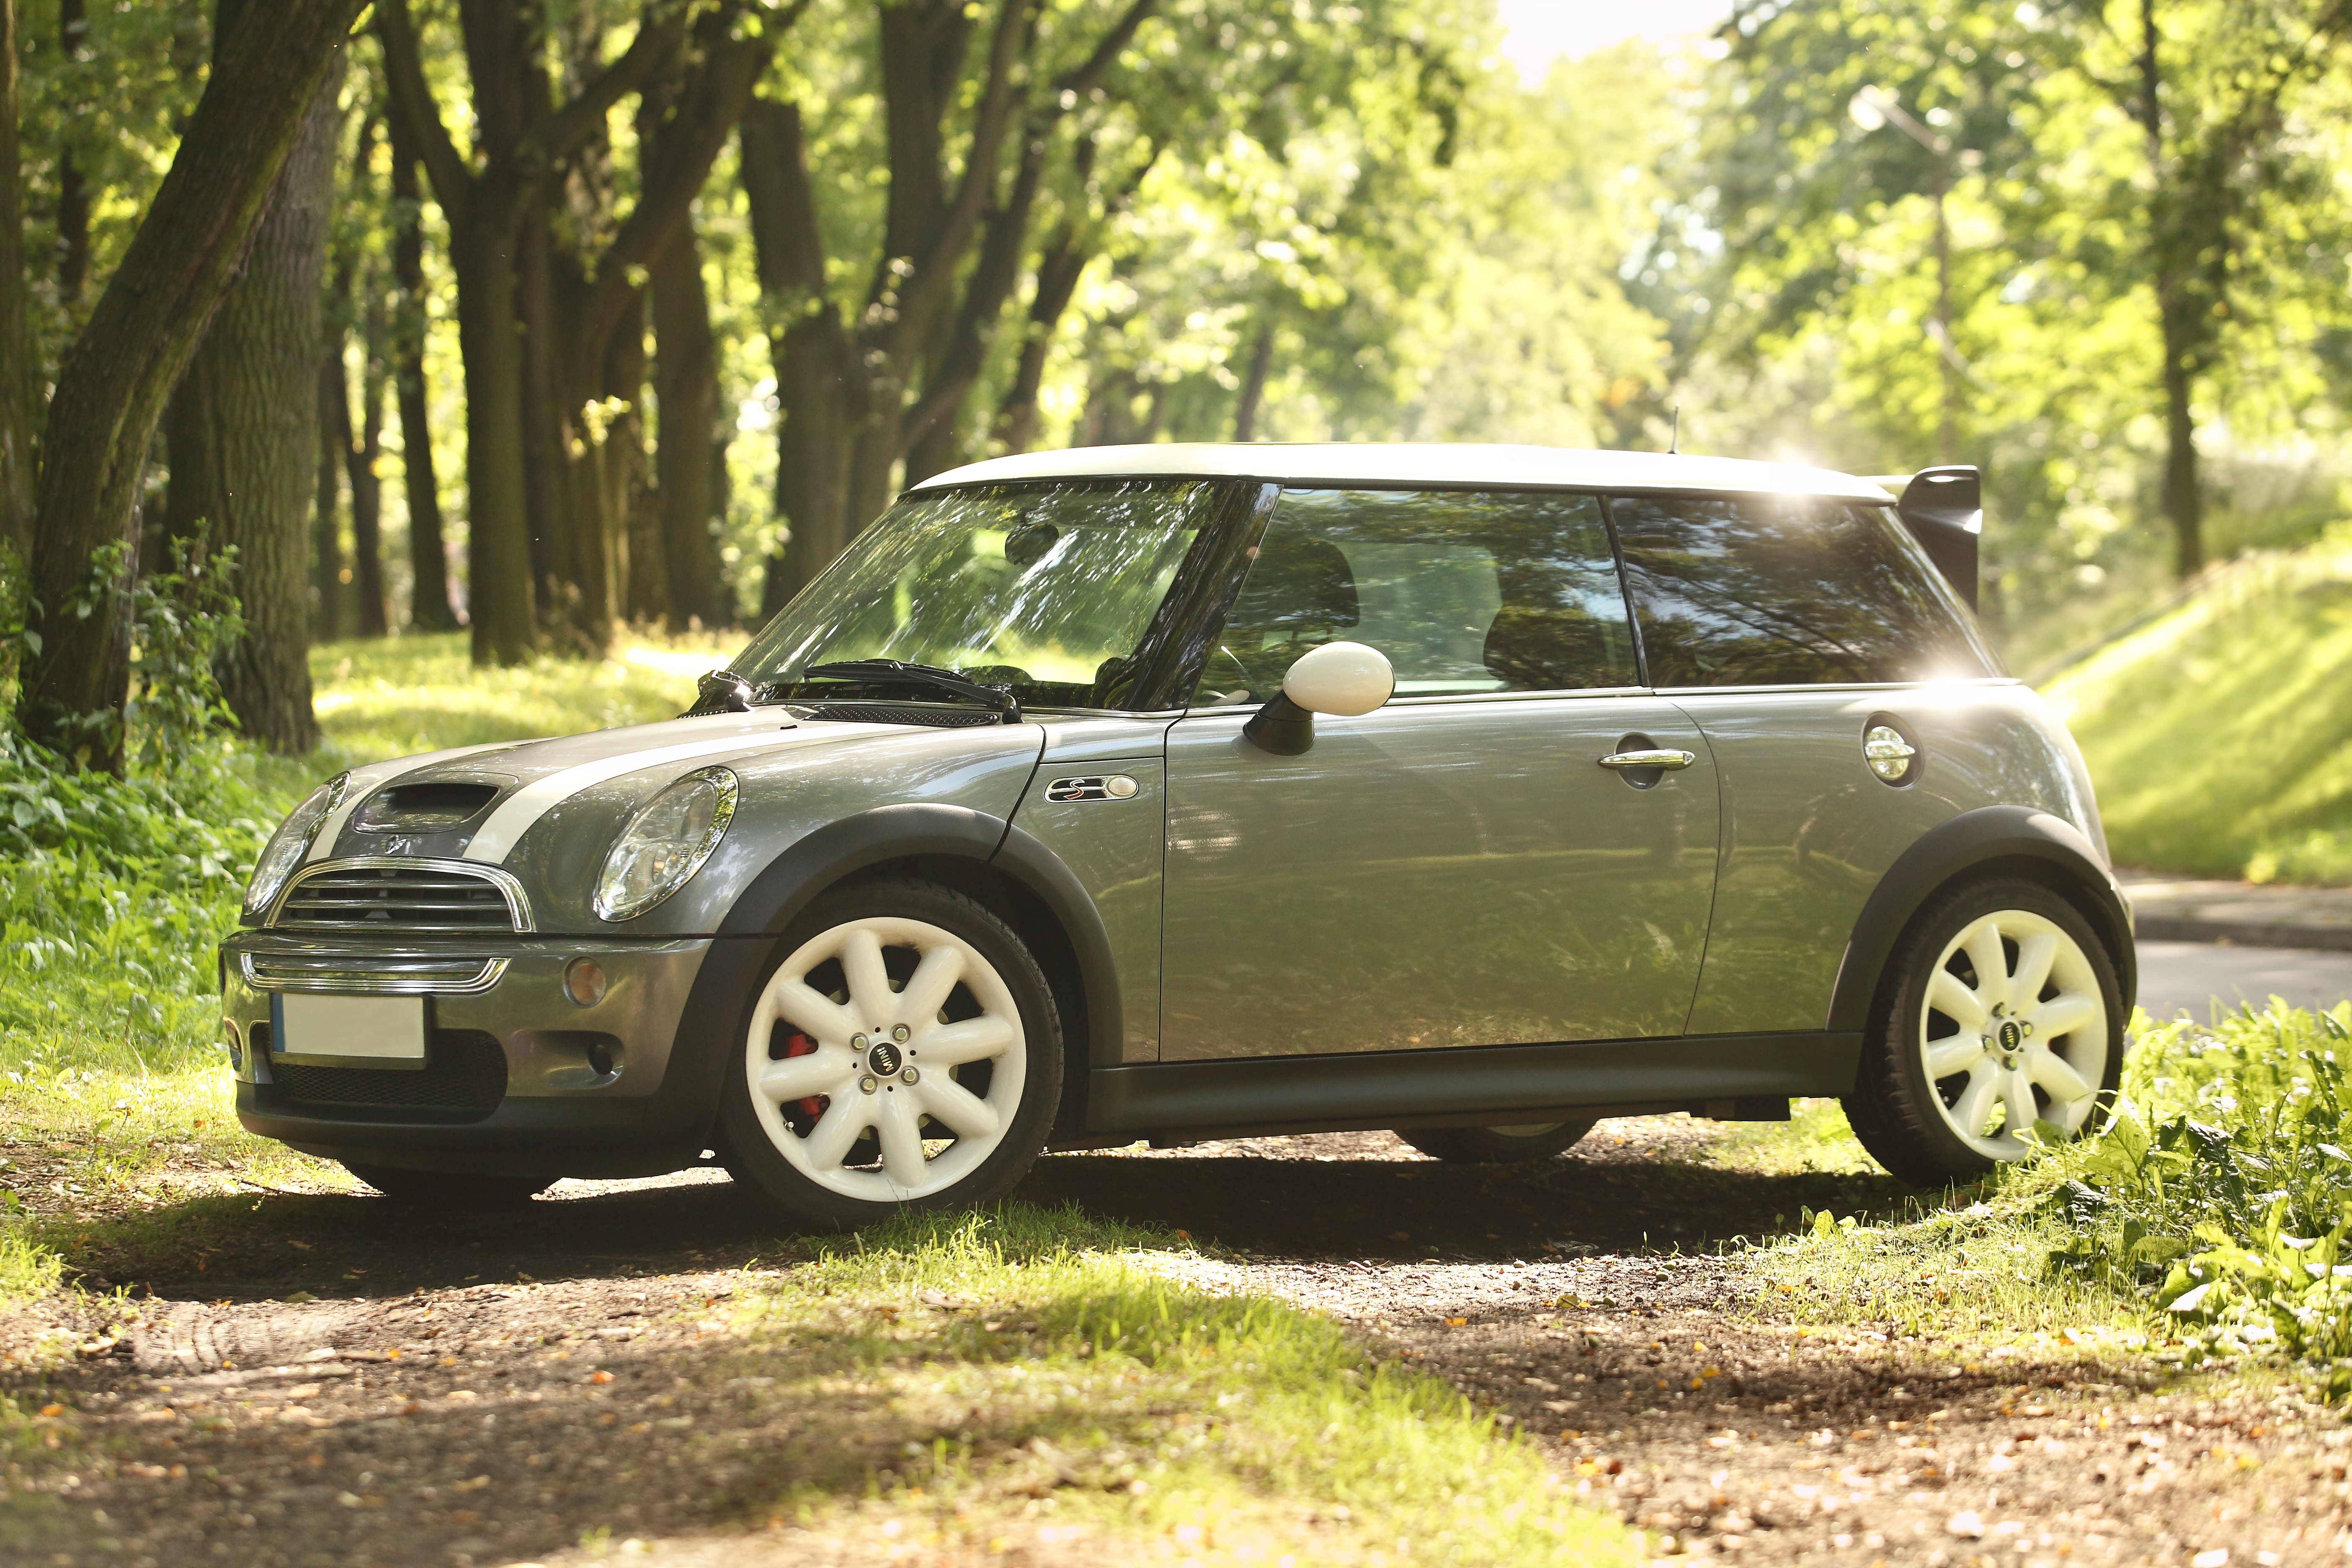 BMW Mini - Lacks Power and Limp Home Mode Activated